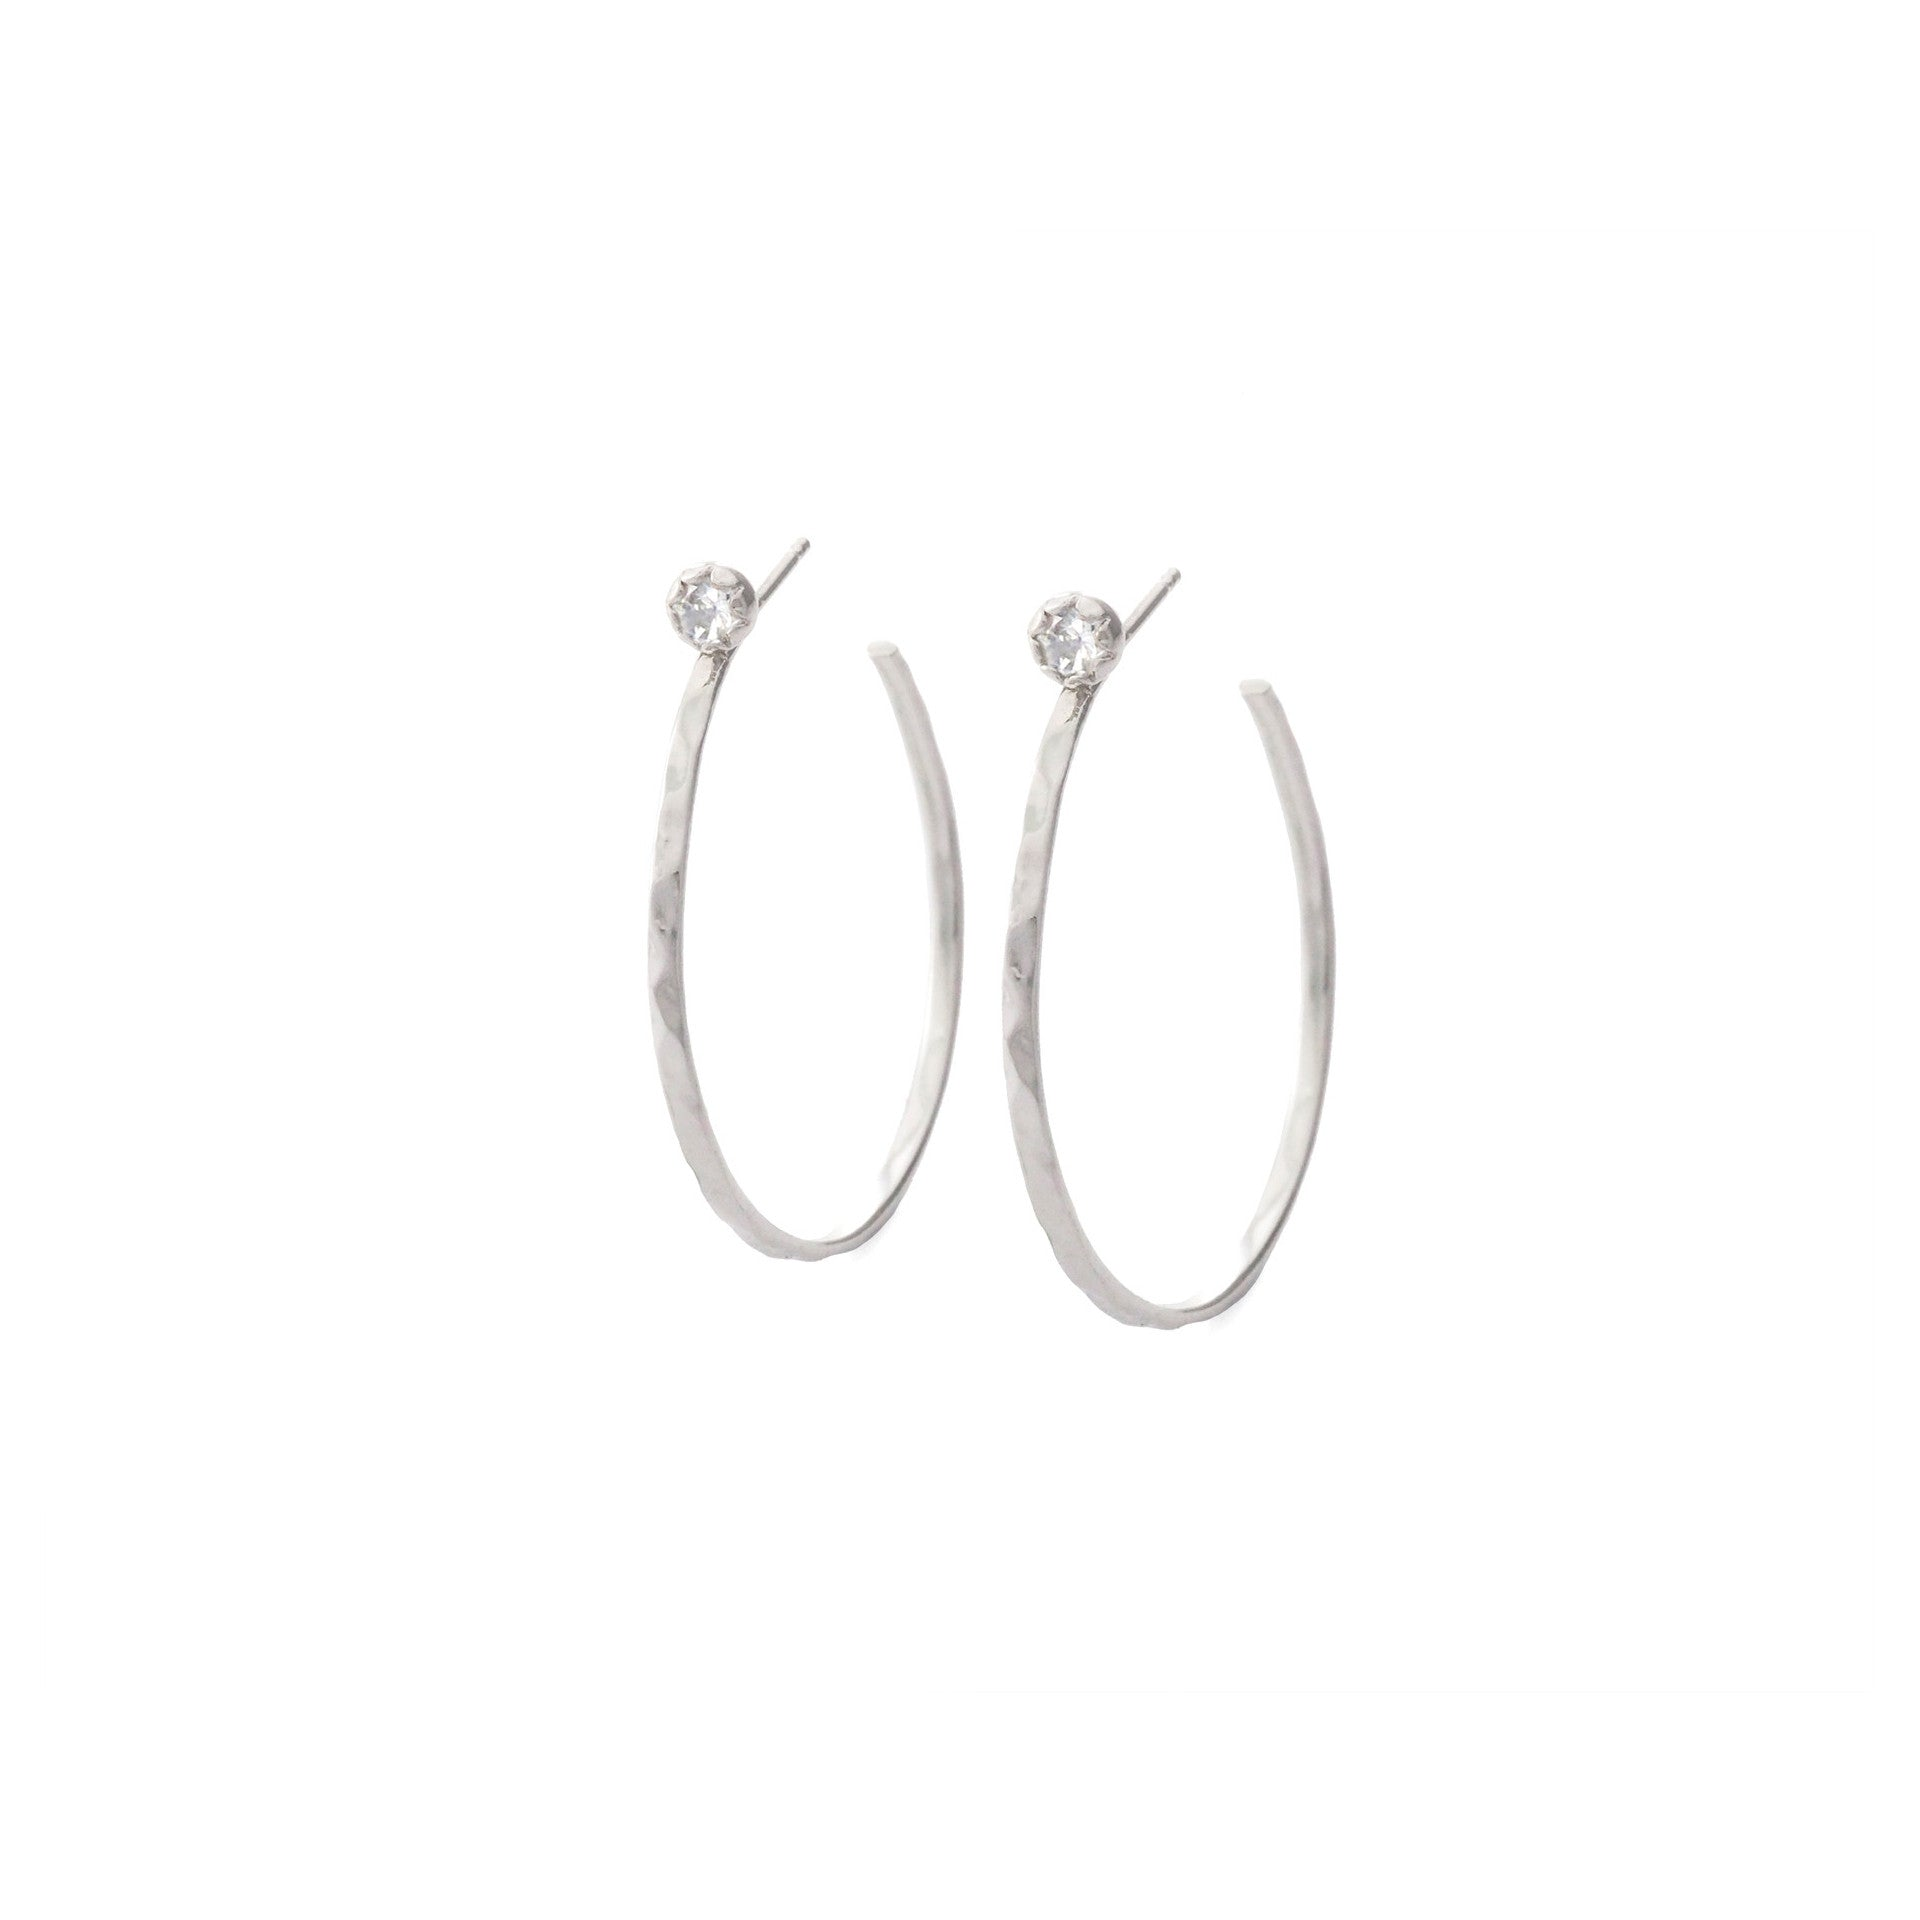 SMALL HOOP EARRINGS WITH STUD